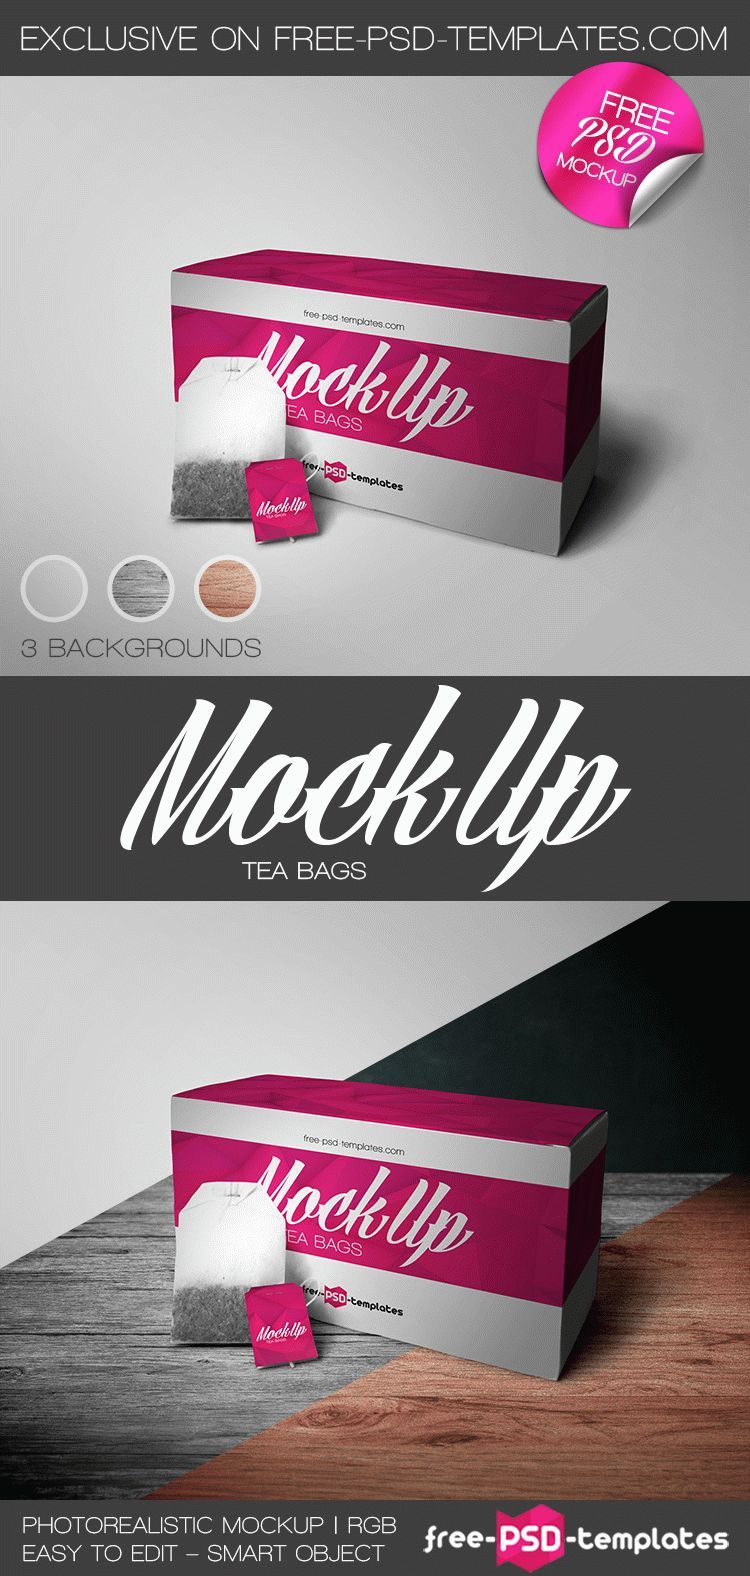 Download Free Tea Bags Psd Mockup Free Psd Templates Free Photoshop Mockup Psd Tea Bag Mockup Free Psd Psd Template Free Free Mockup